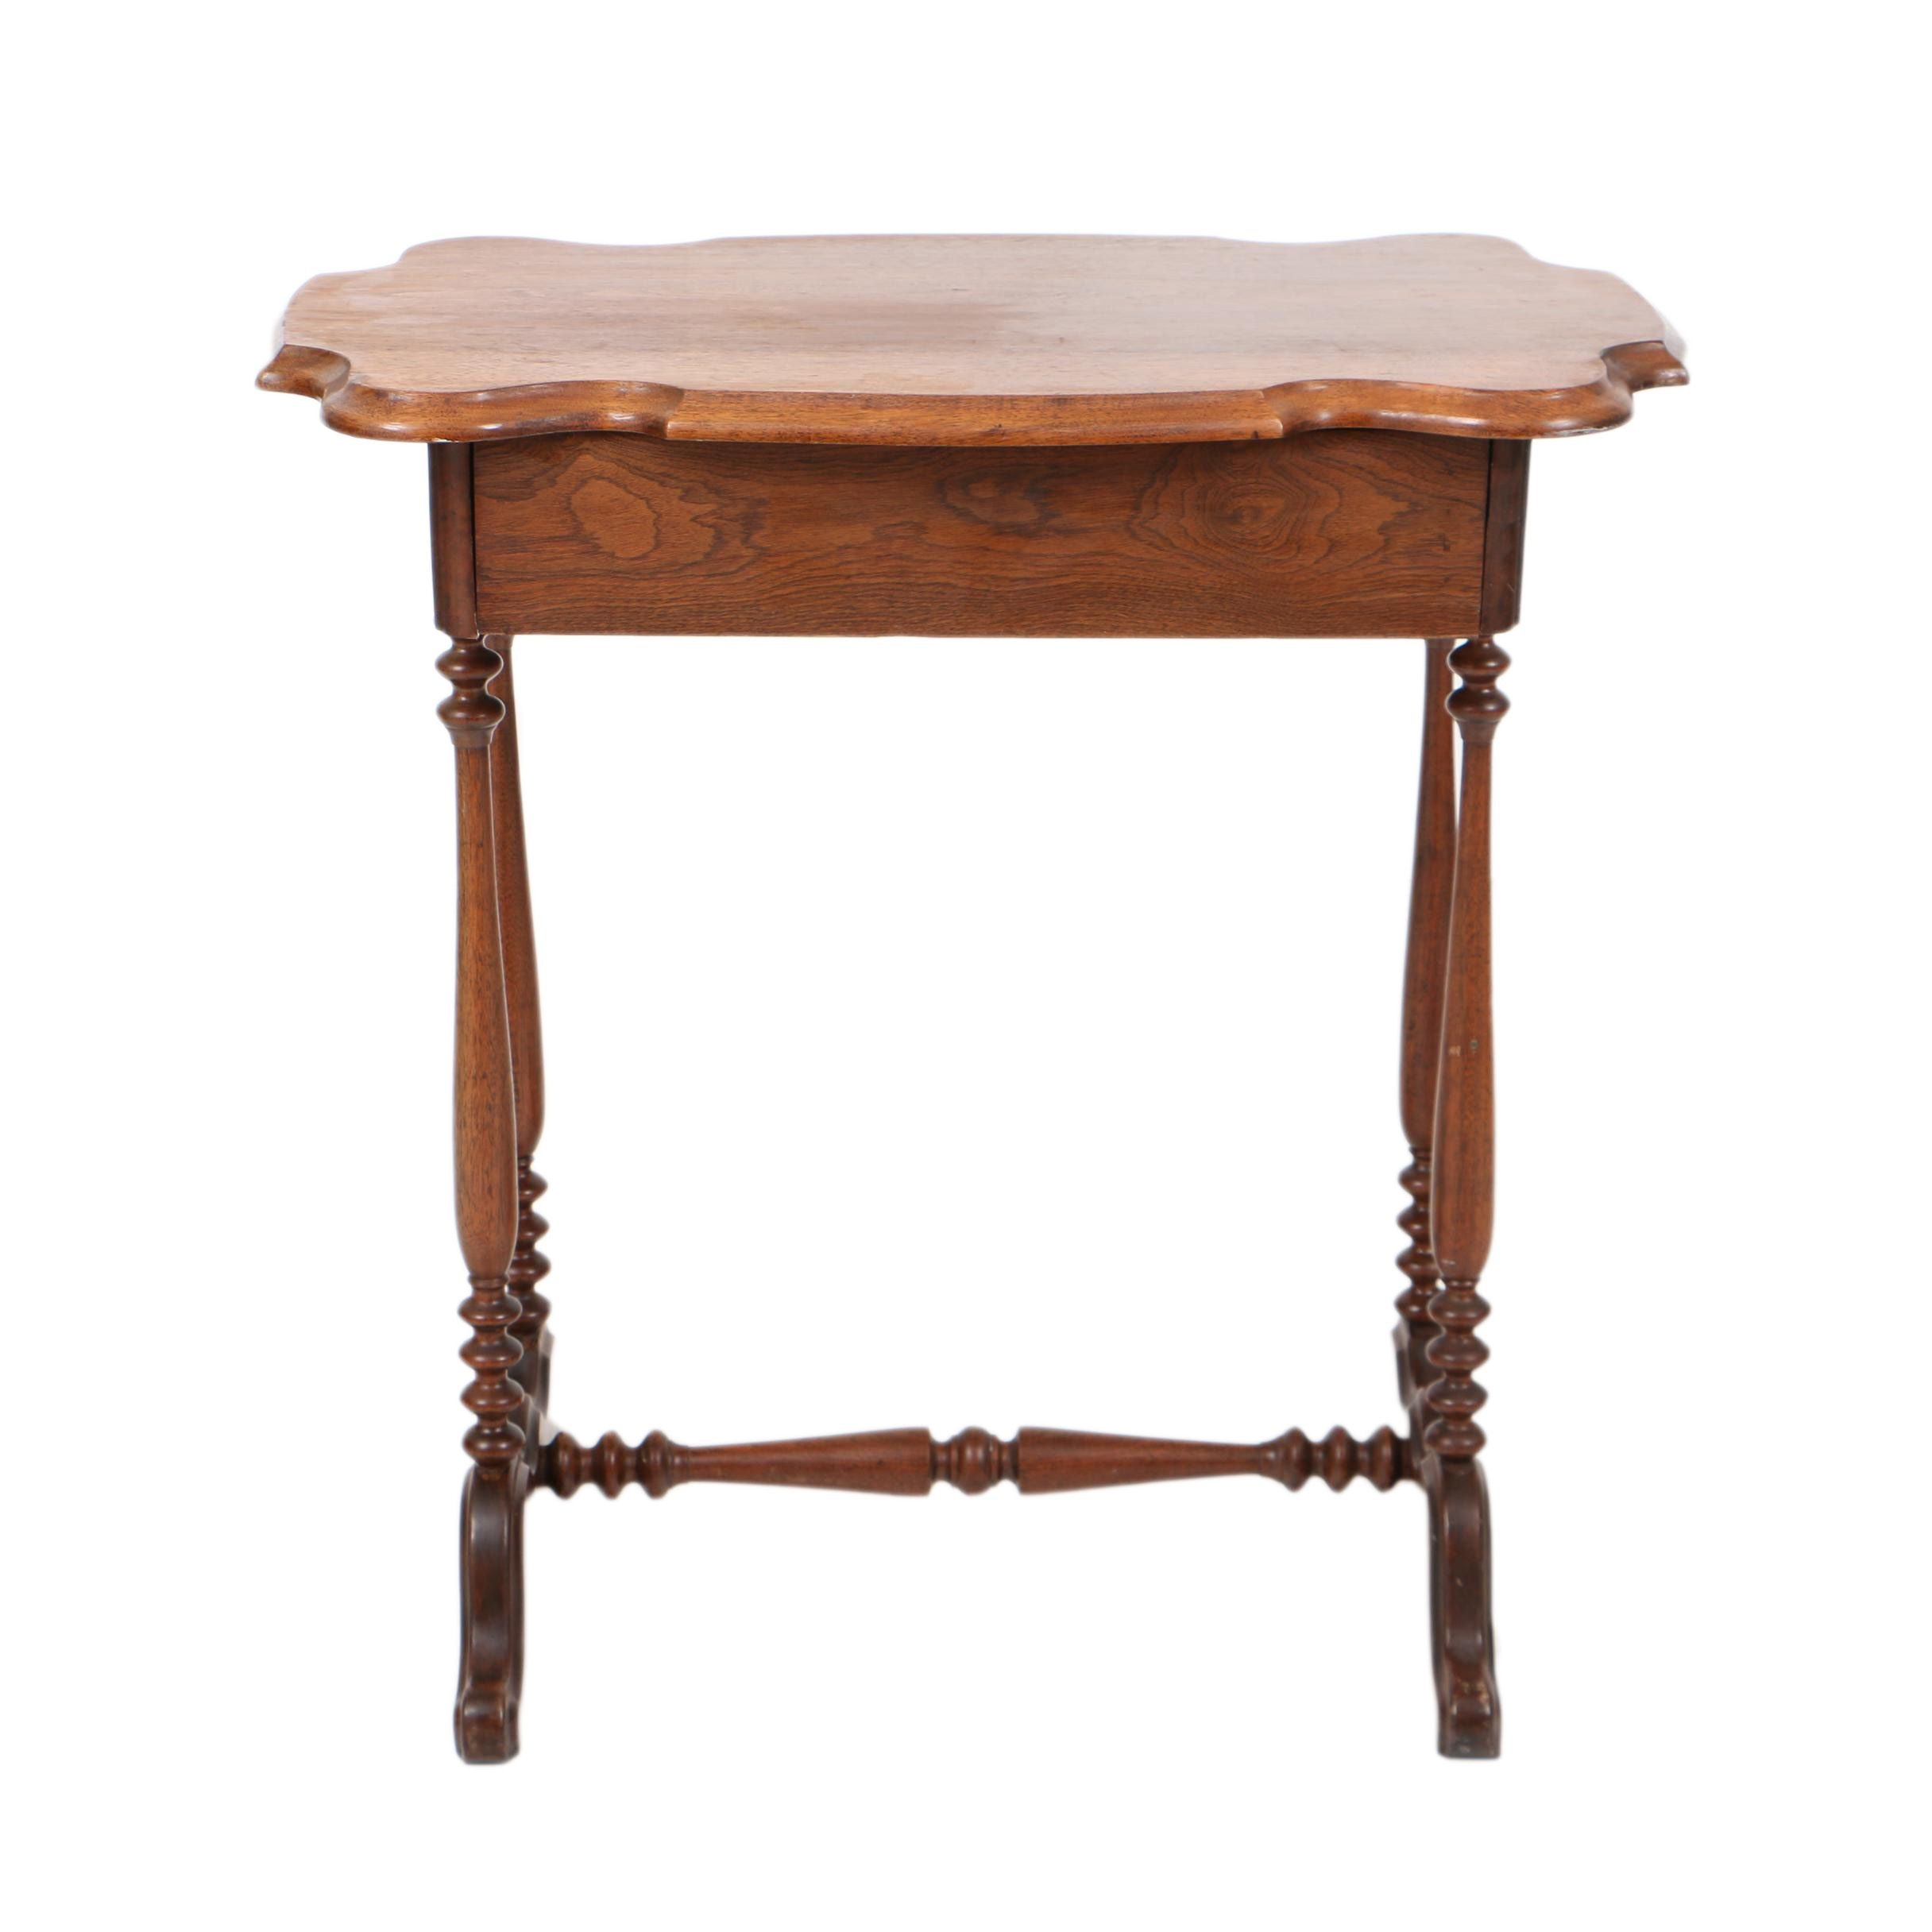 Antique Victorian One-Drawer Side Table in Walnut, Late 19th Century